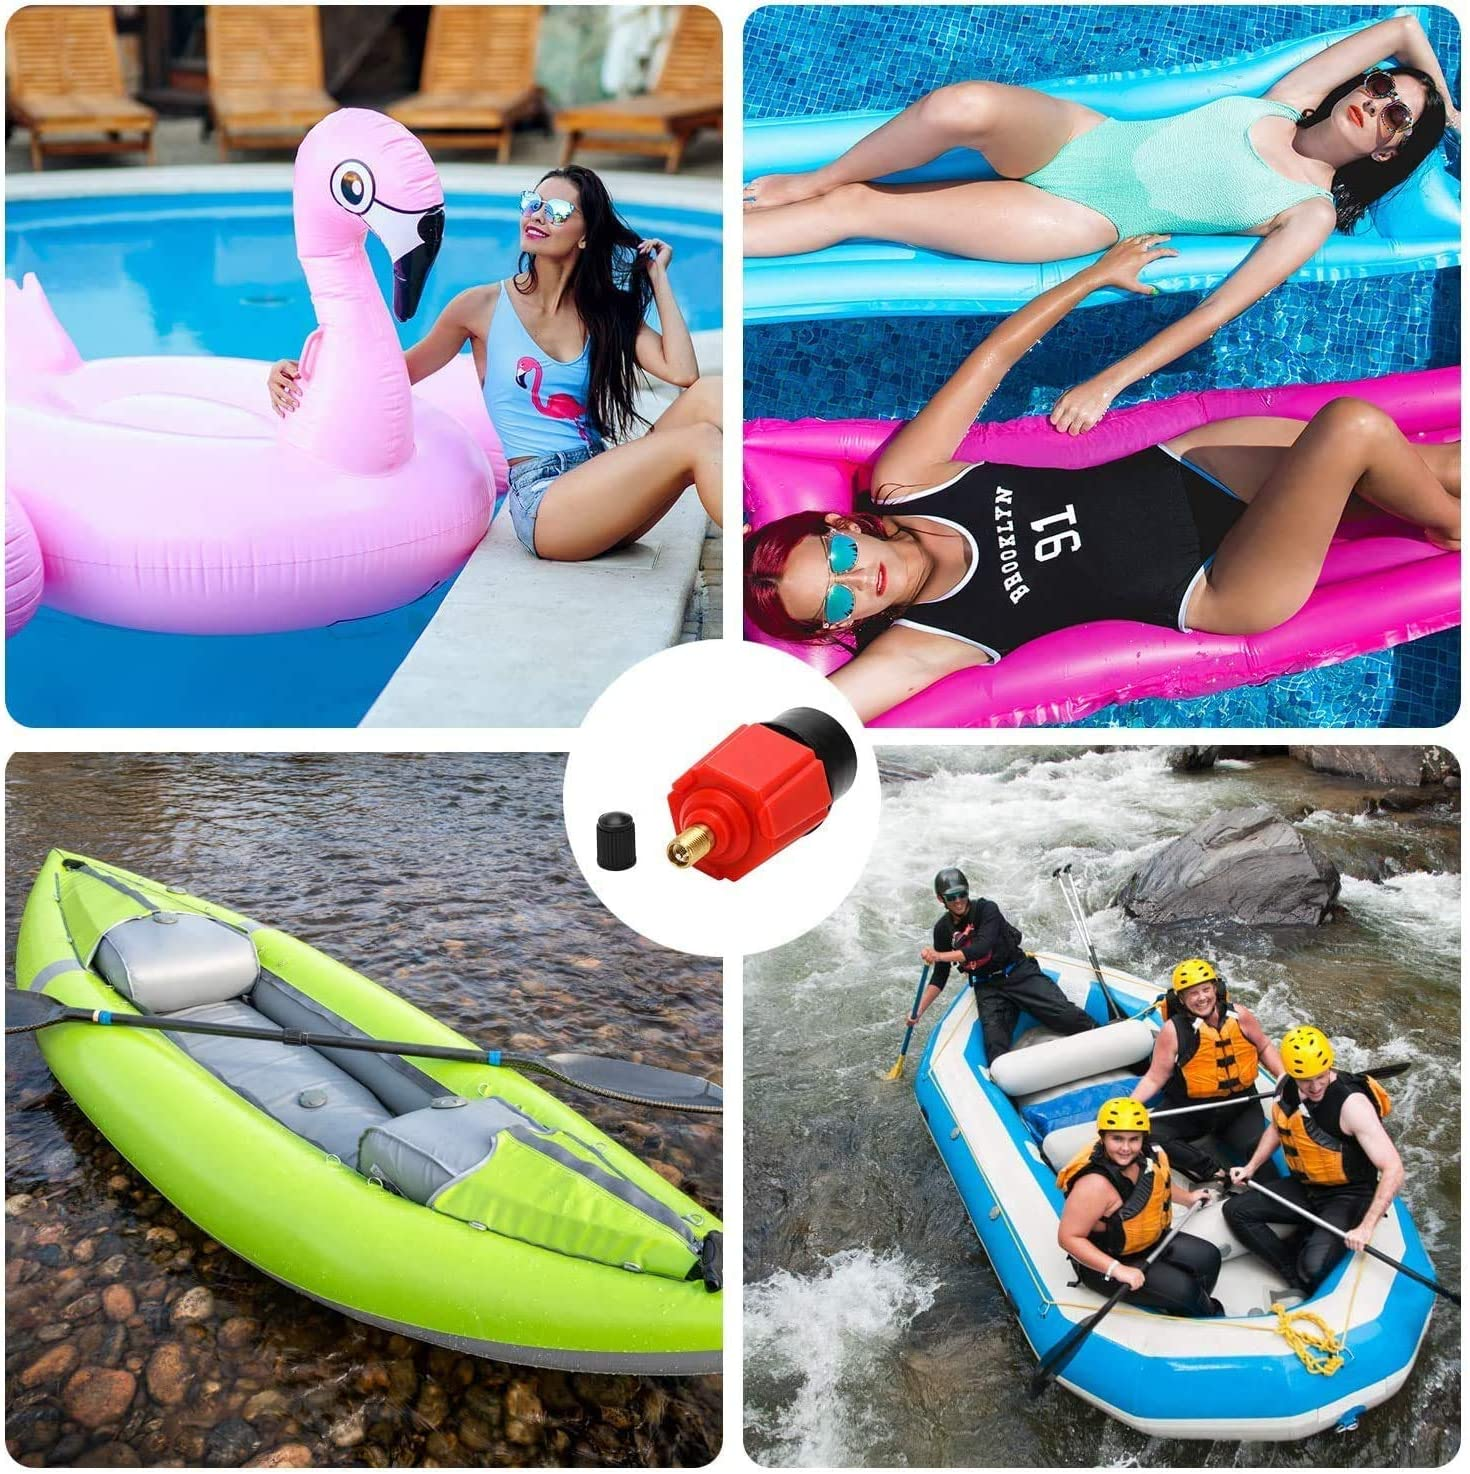 Air Valve Adaptor for Inflatable Boat Stand Up Paddle Board Retail Sign Systems Inflatable SUP Pump Adaptor Compressor Air Valve Converter Multifunction SUP Valve Adapter with 4 Air Valve Nozzlesz